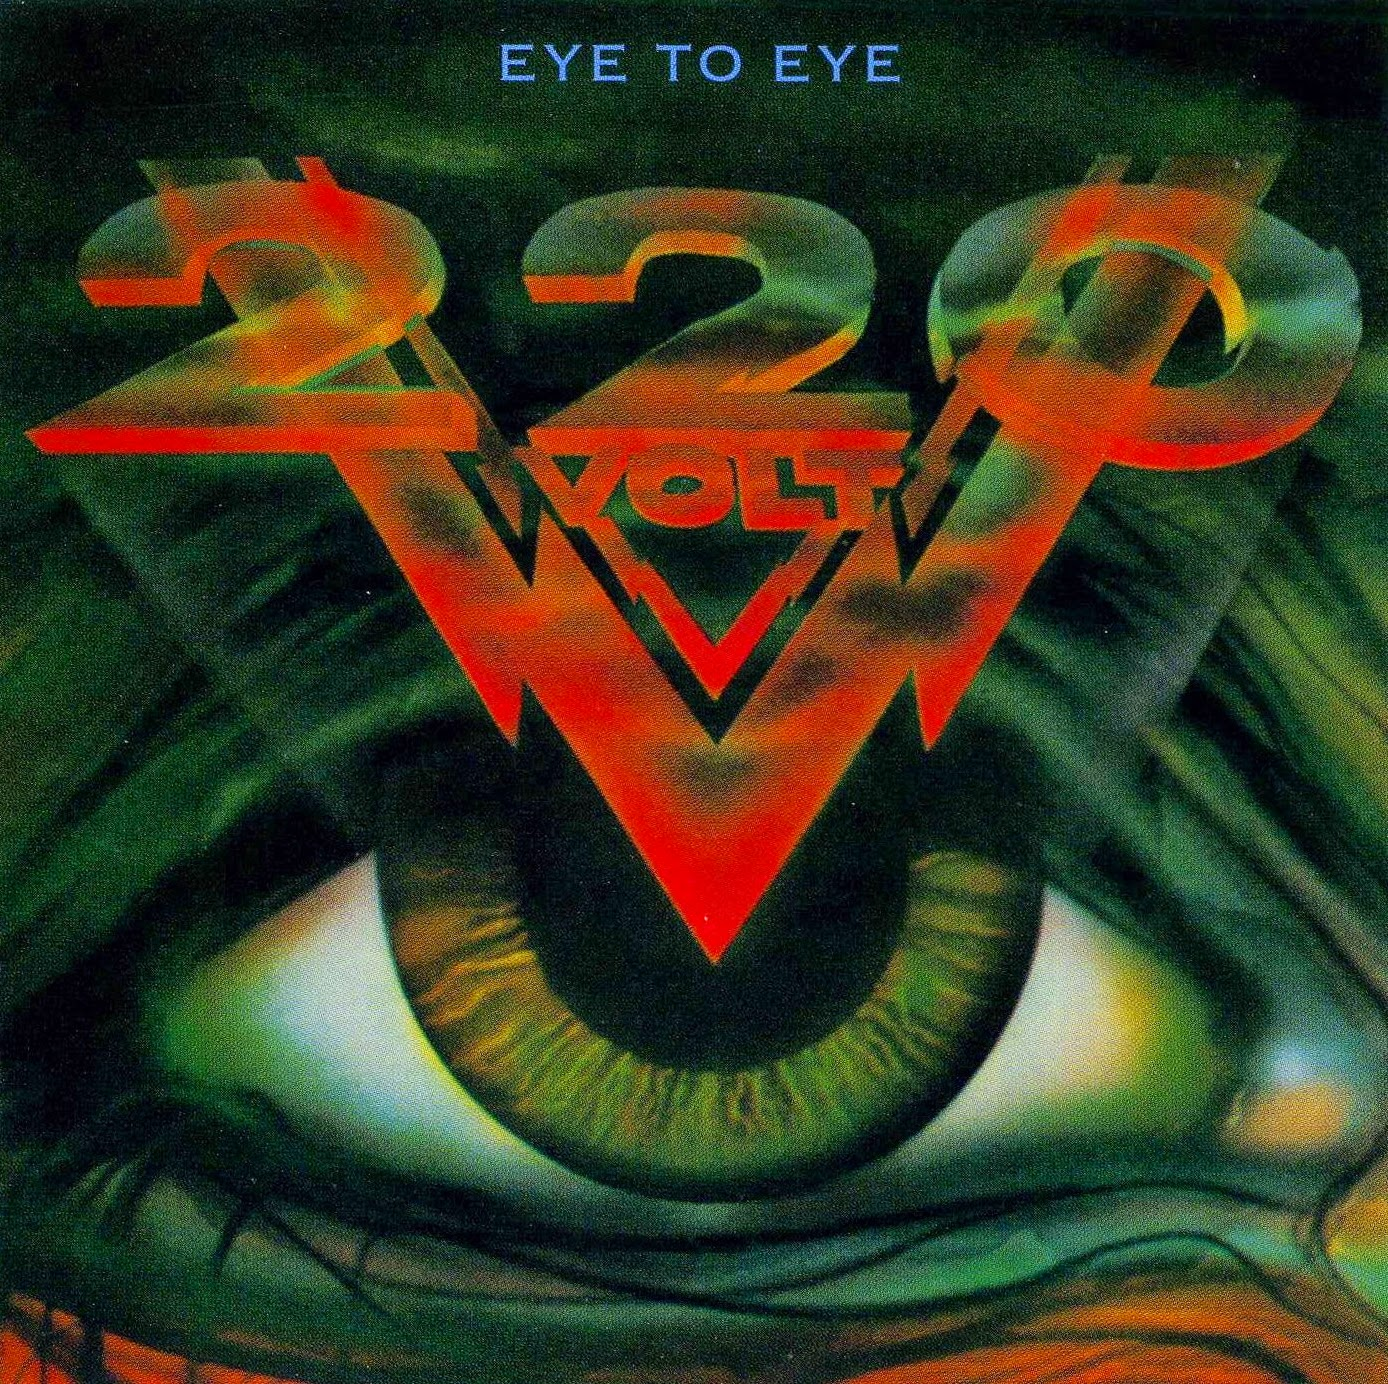 220 Volt Eye to eye 1988 aor melodic rock music blogspot full albums bands lyrics